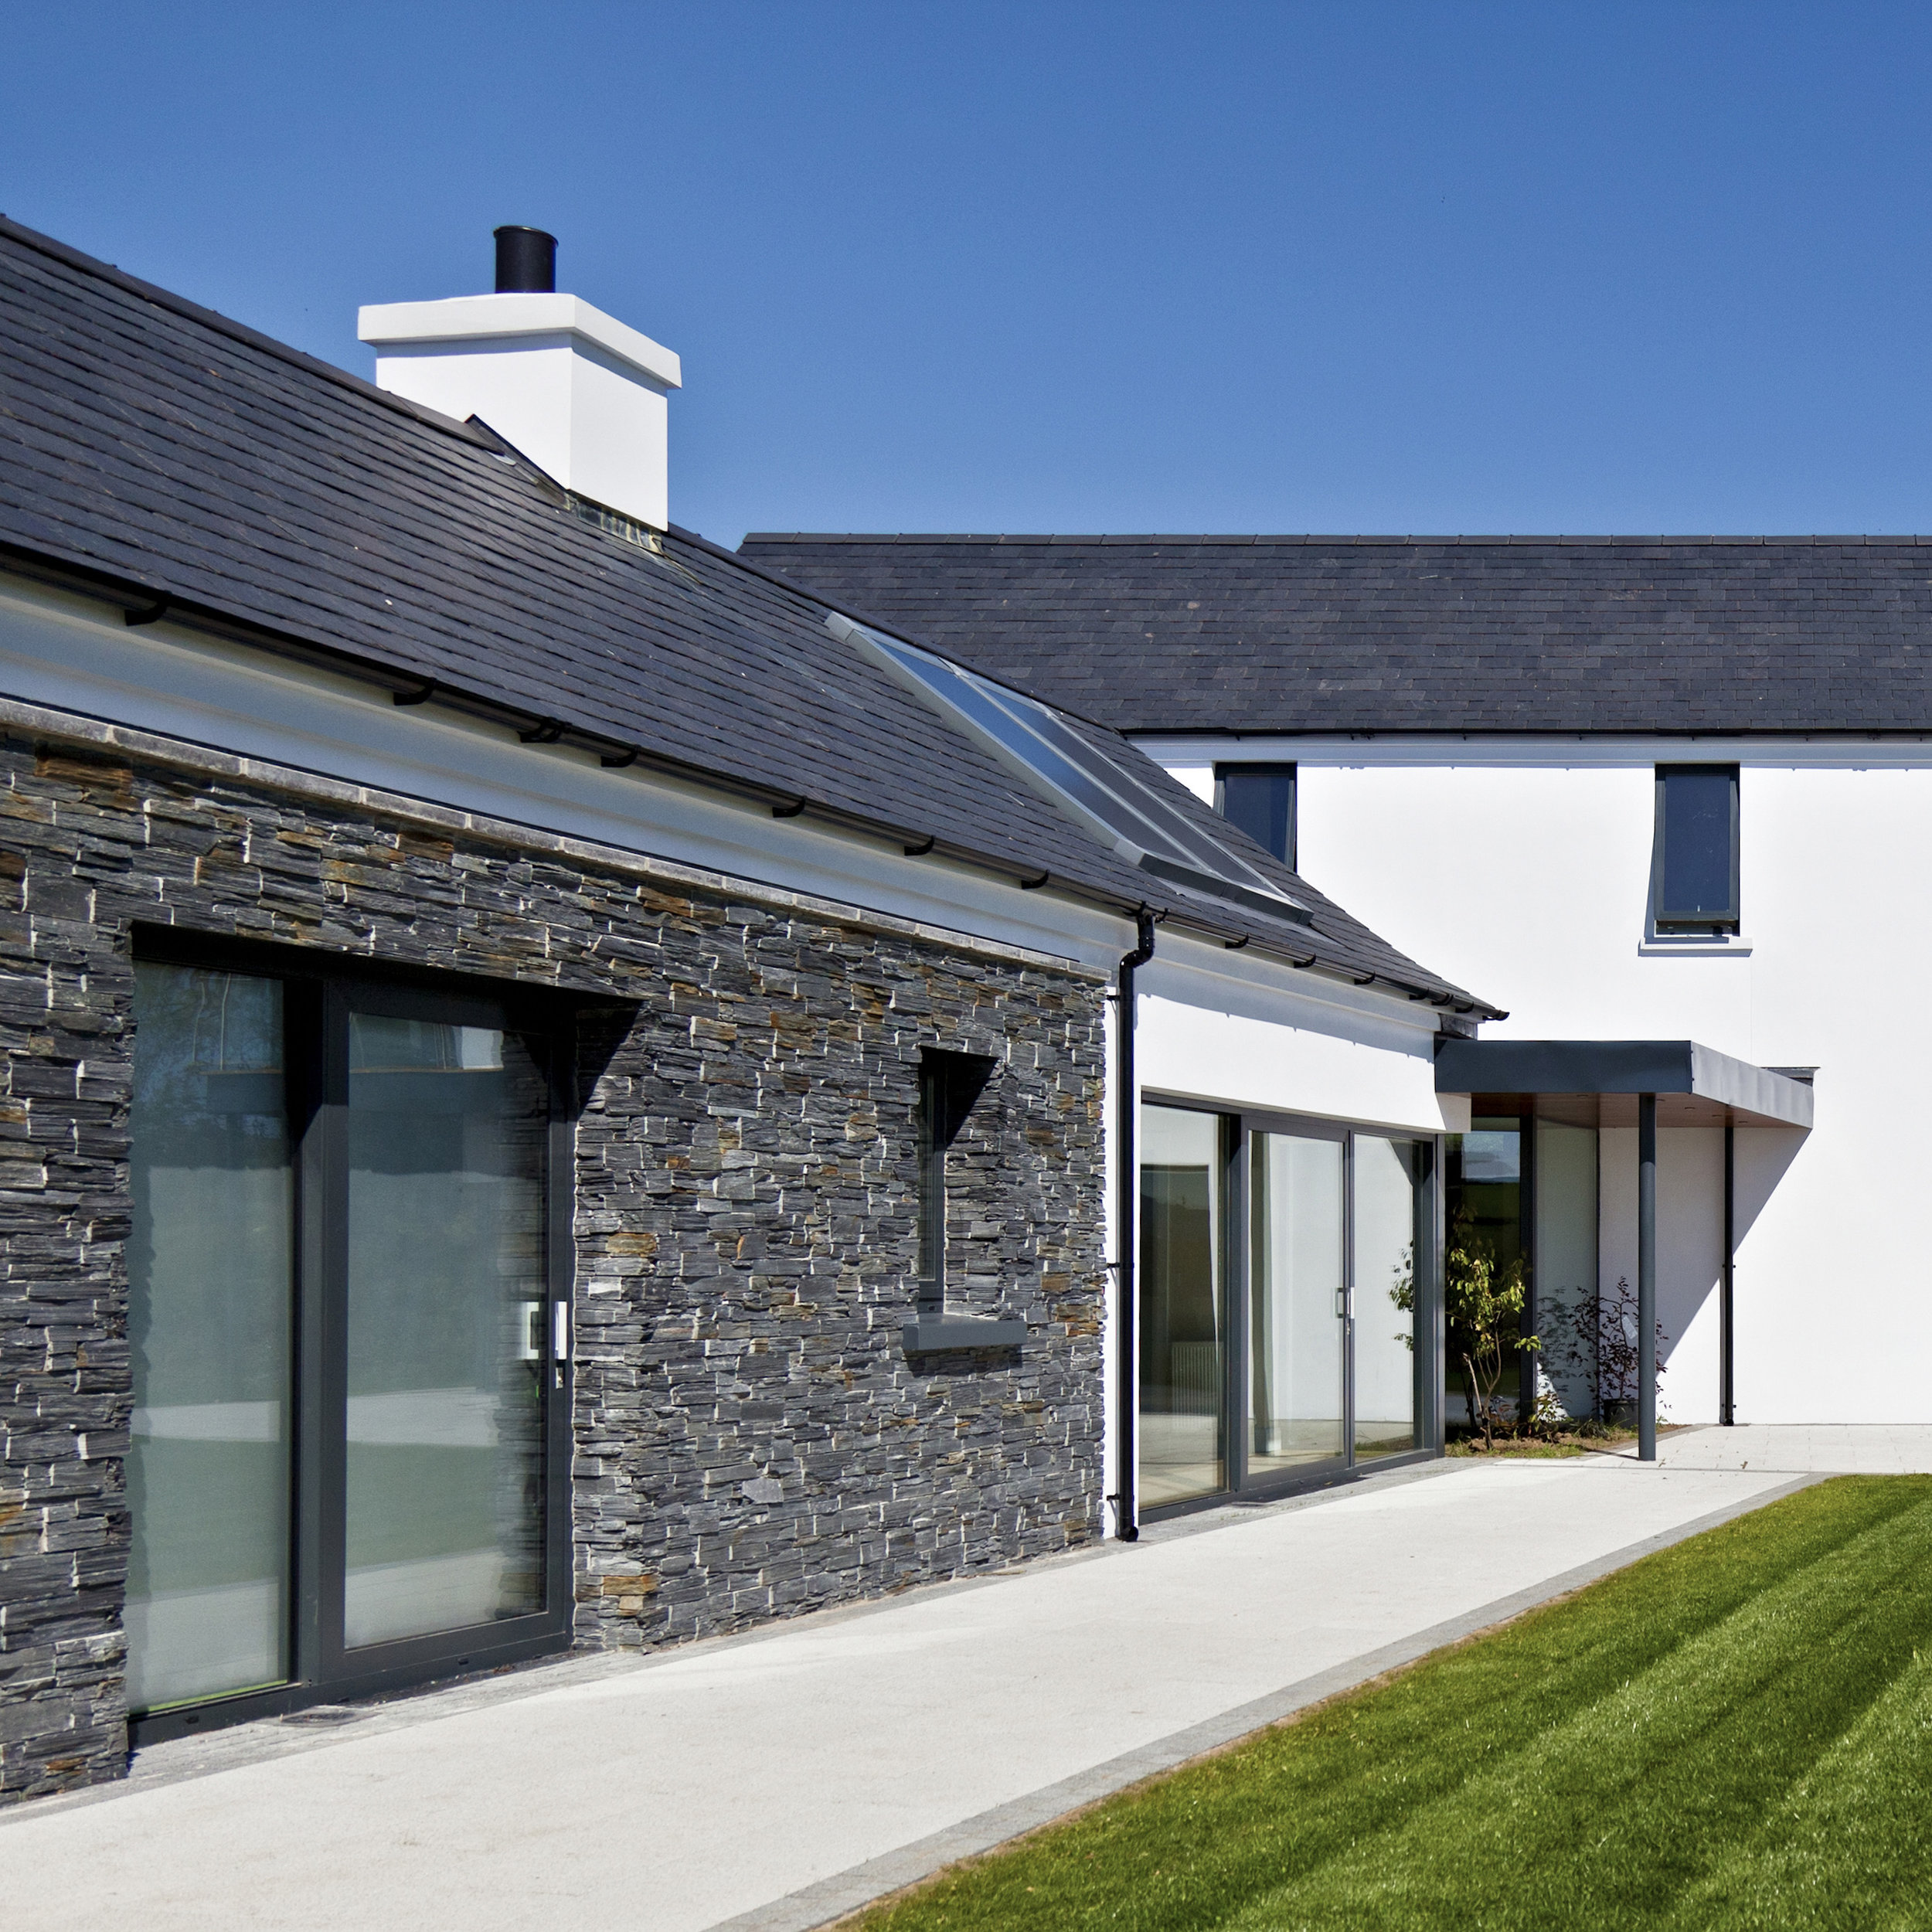 Drumlins Eco House, Co. Down  Low Energy House - B rated for energy efficiency